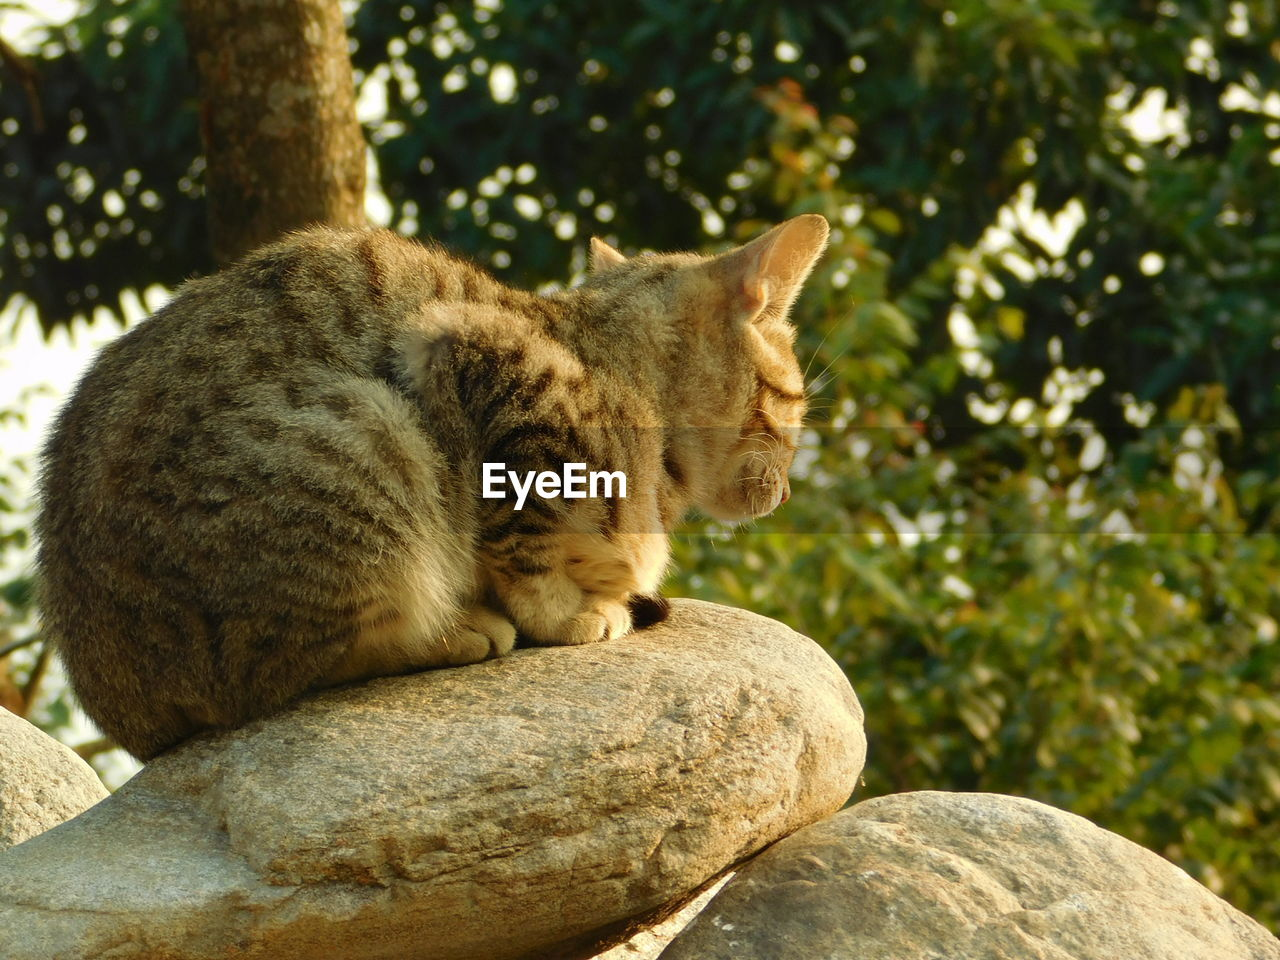 one animal, mammal, animal themes, animal, cat, feline, domestic cat, tree, vertebrate, pets, rock, focus on foreground, domestic animals, no people, plant, day, nature, rock - object, domestic, relaxation, whisker